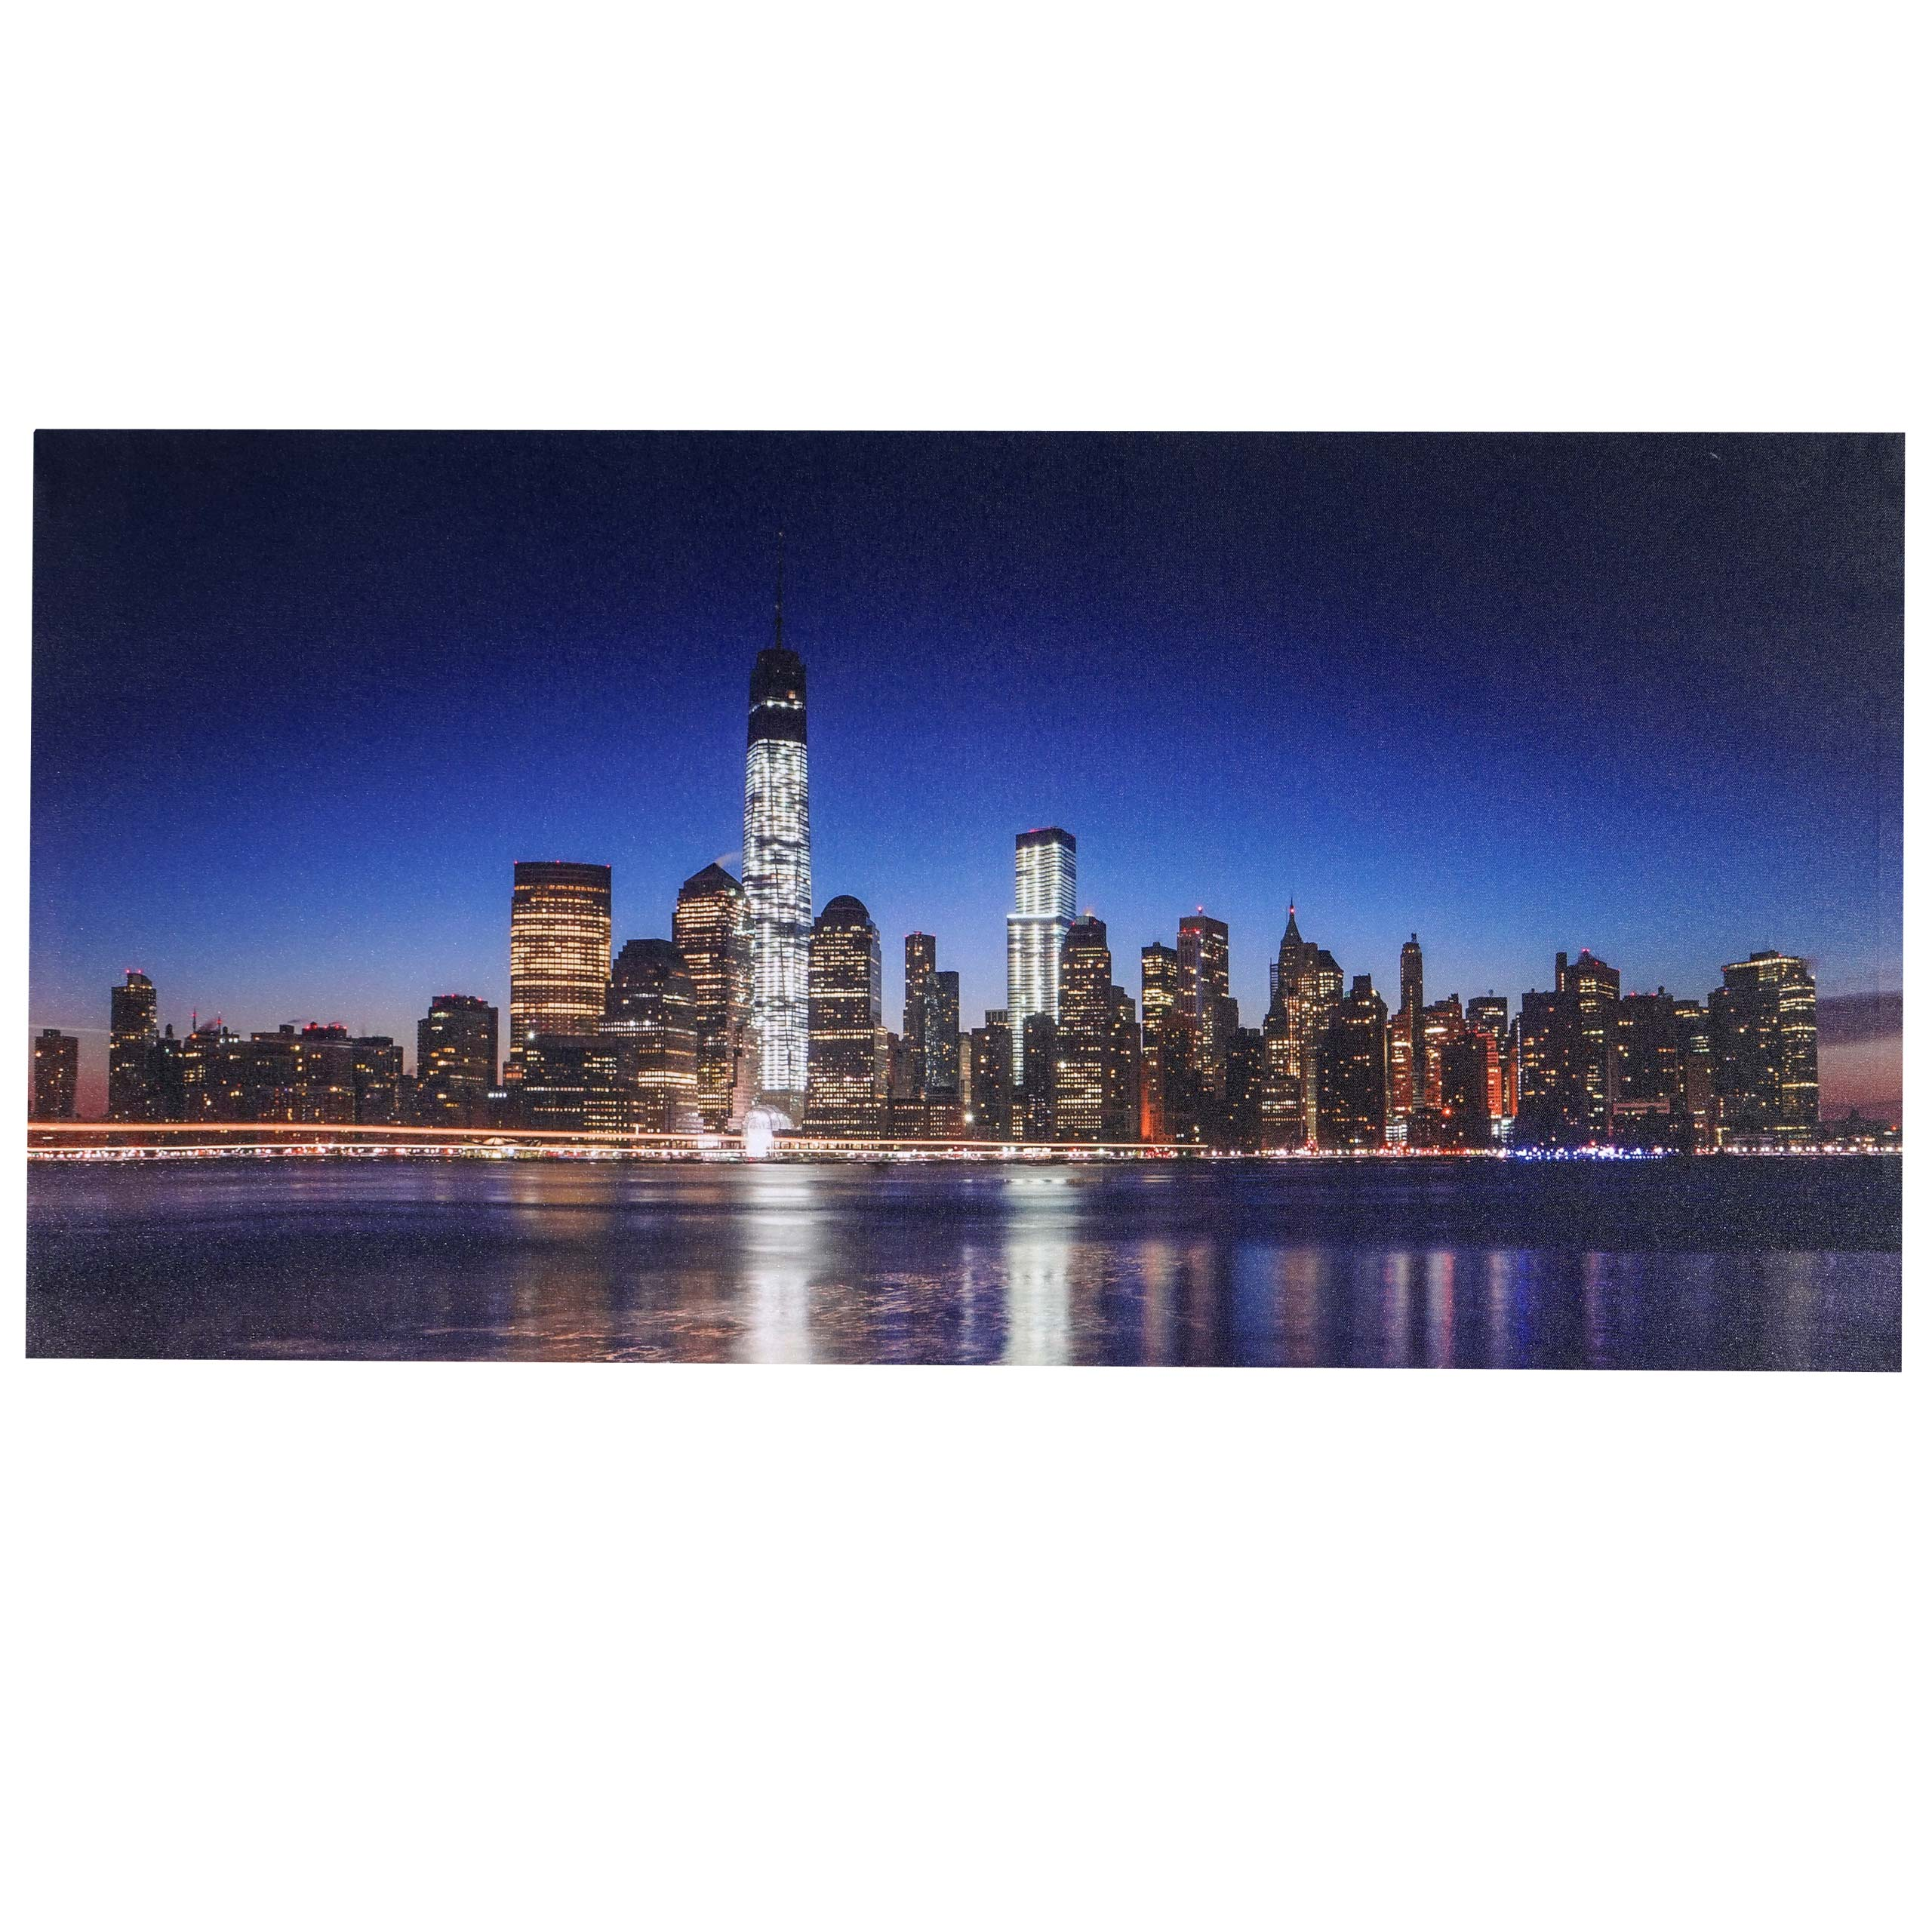 led bild mit beleuchtung timer 100x50cm flackernd one world trade center ebay. Black Bedroom Furniture Sets. Home Design Ideas